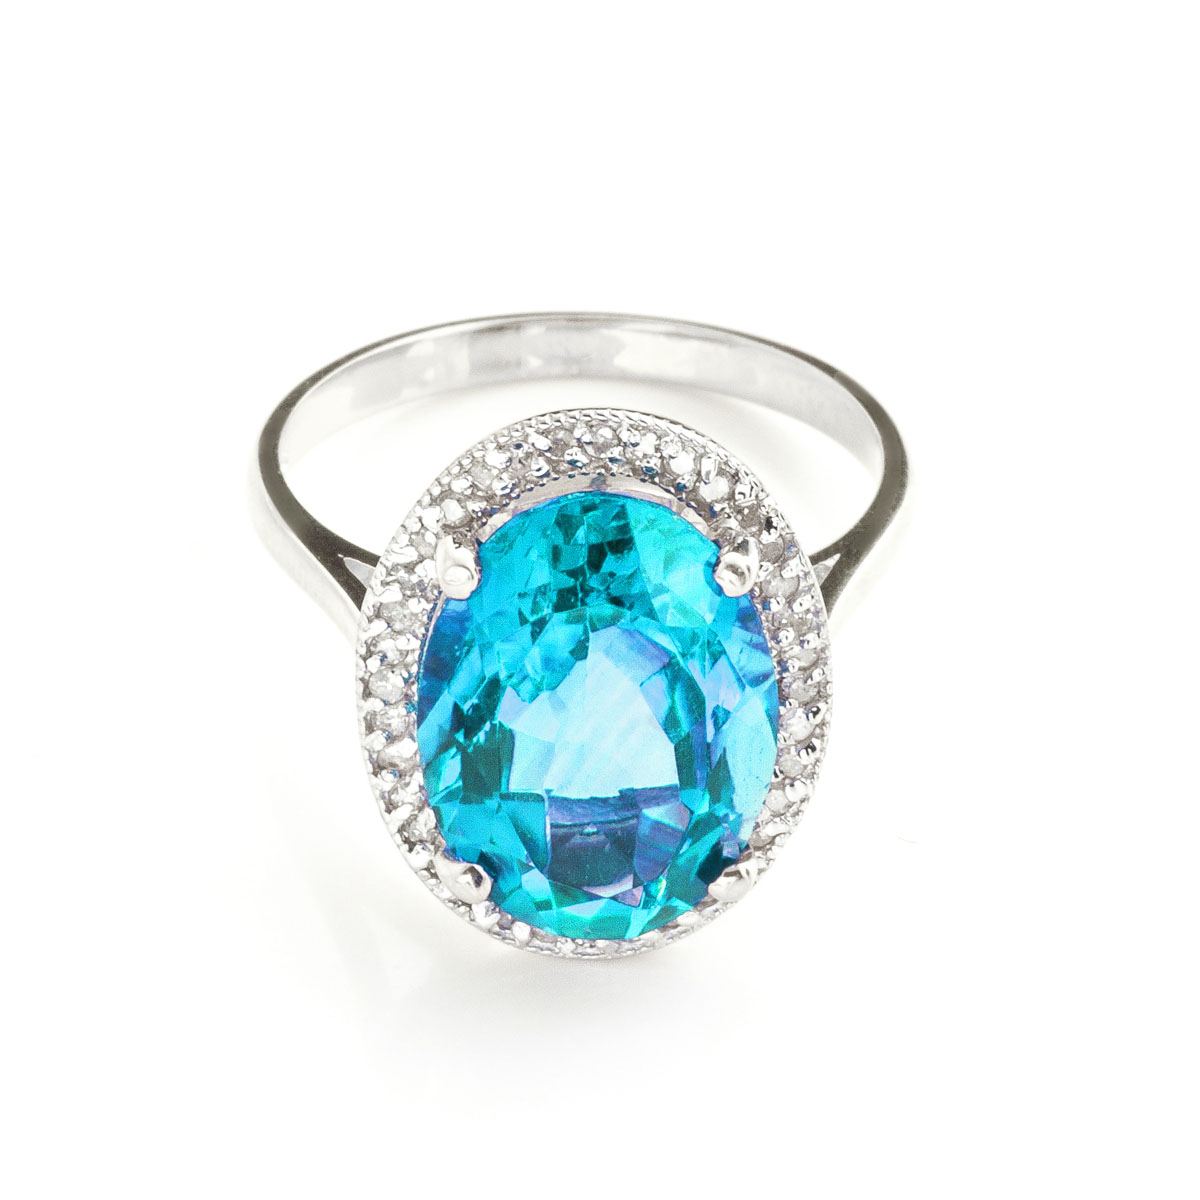 Blue Topaz Halo Ring 7.58 ctw in 18ct White Gold